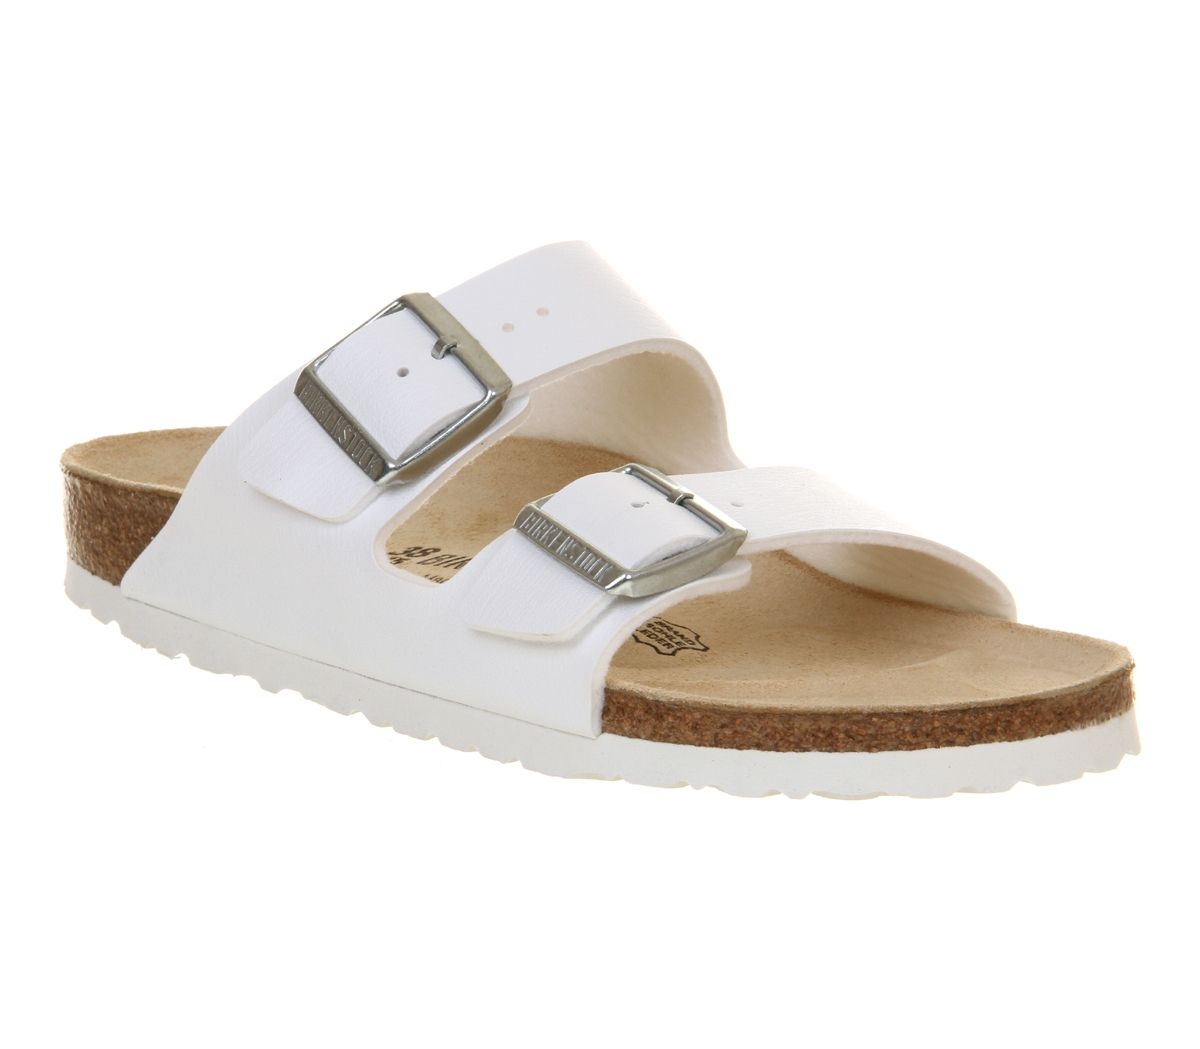 Birkenstock Arizona Two Strap Sandals White Birko Flor - Sandals